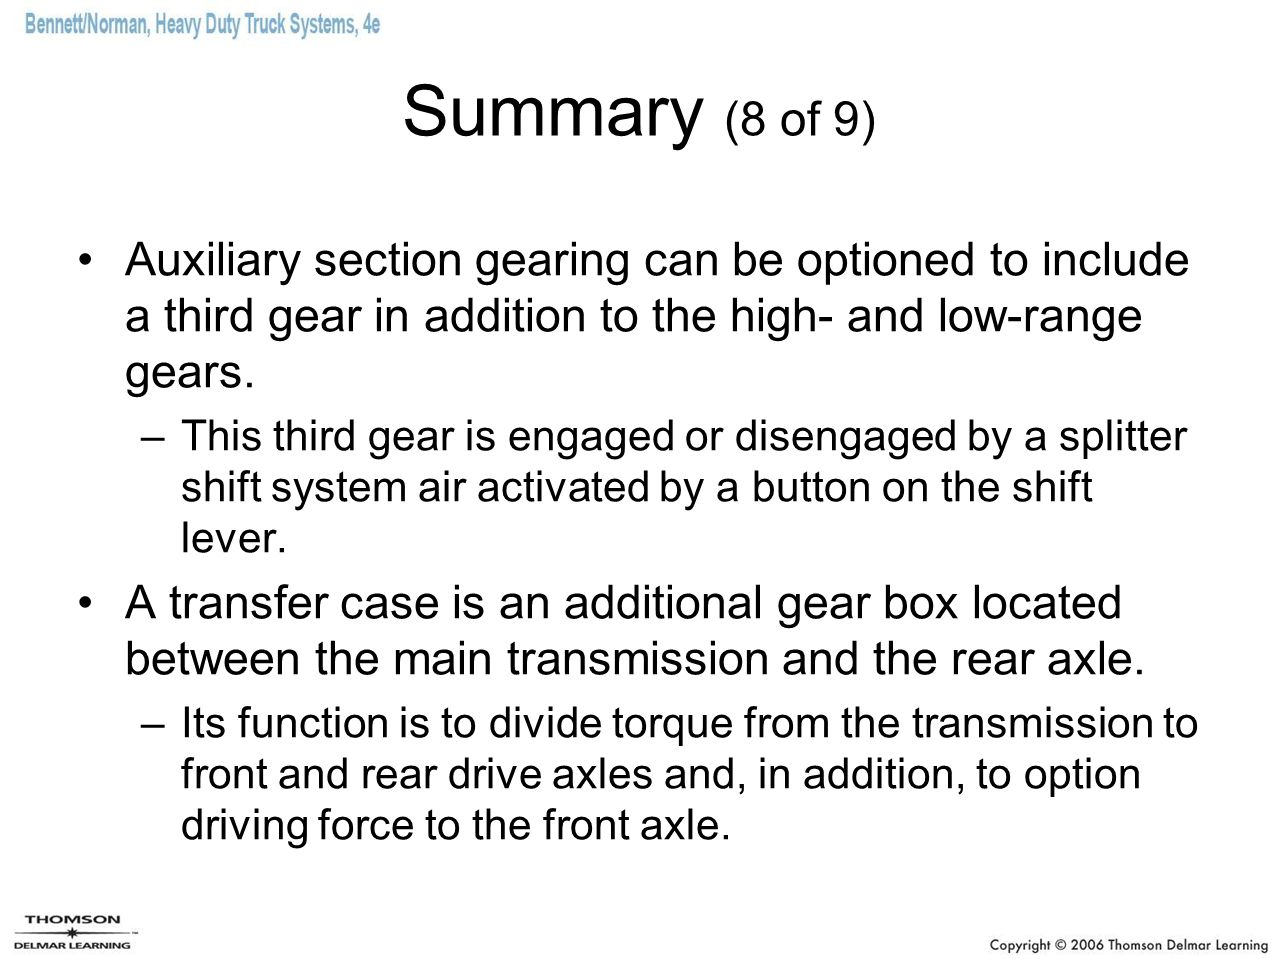 Summary (8 of 9) Auxiliary section gearing can be optioned to include a third gear in addition to the high- and low-range gears.